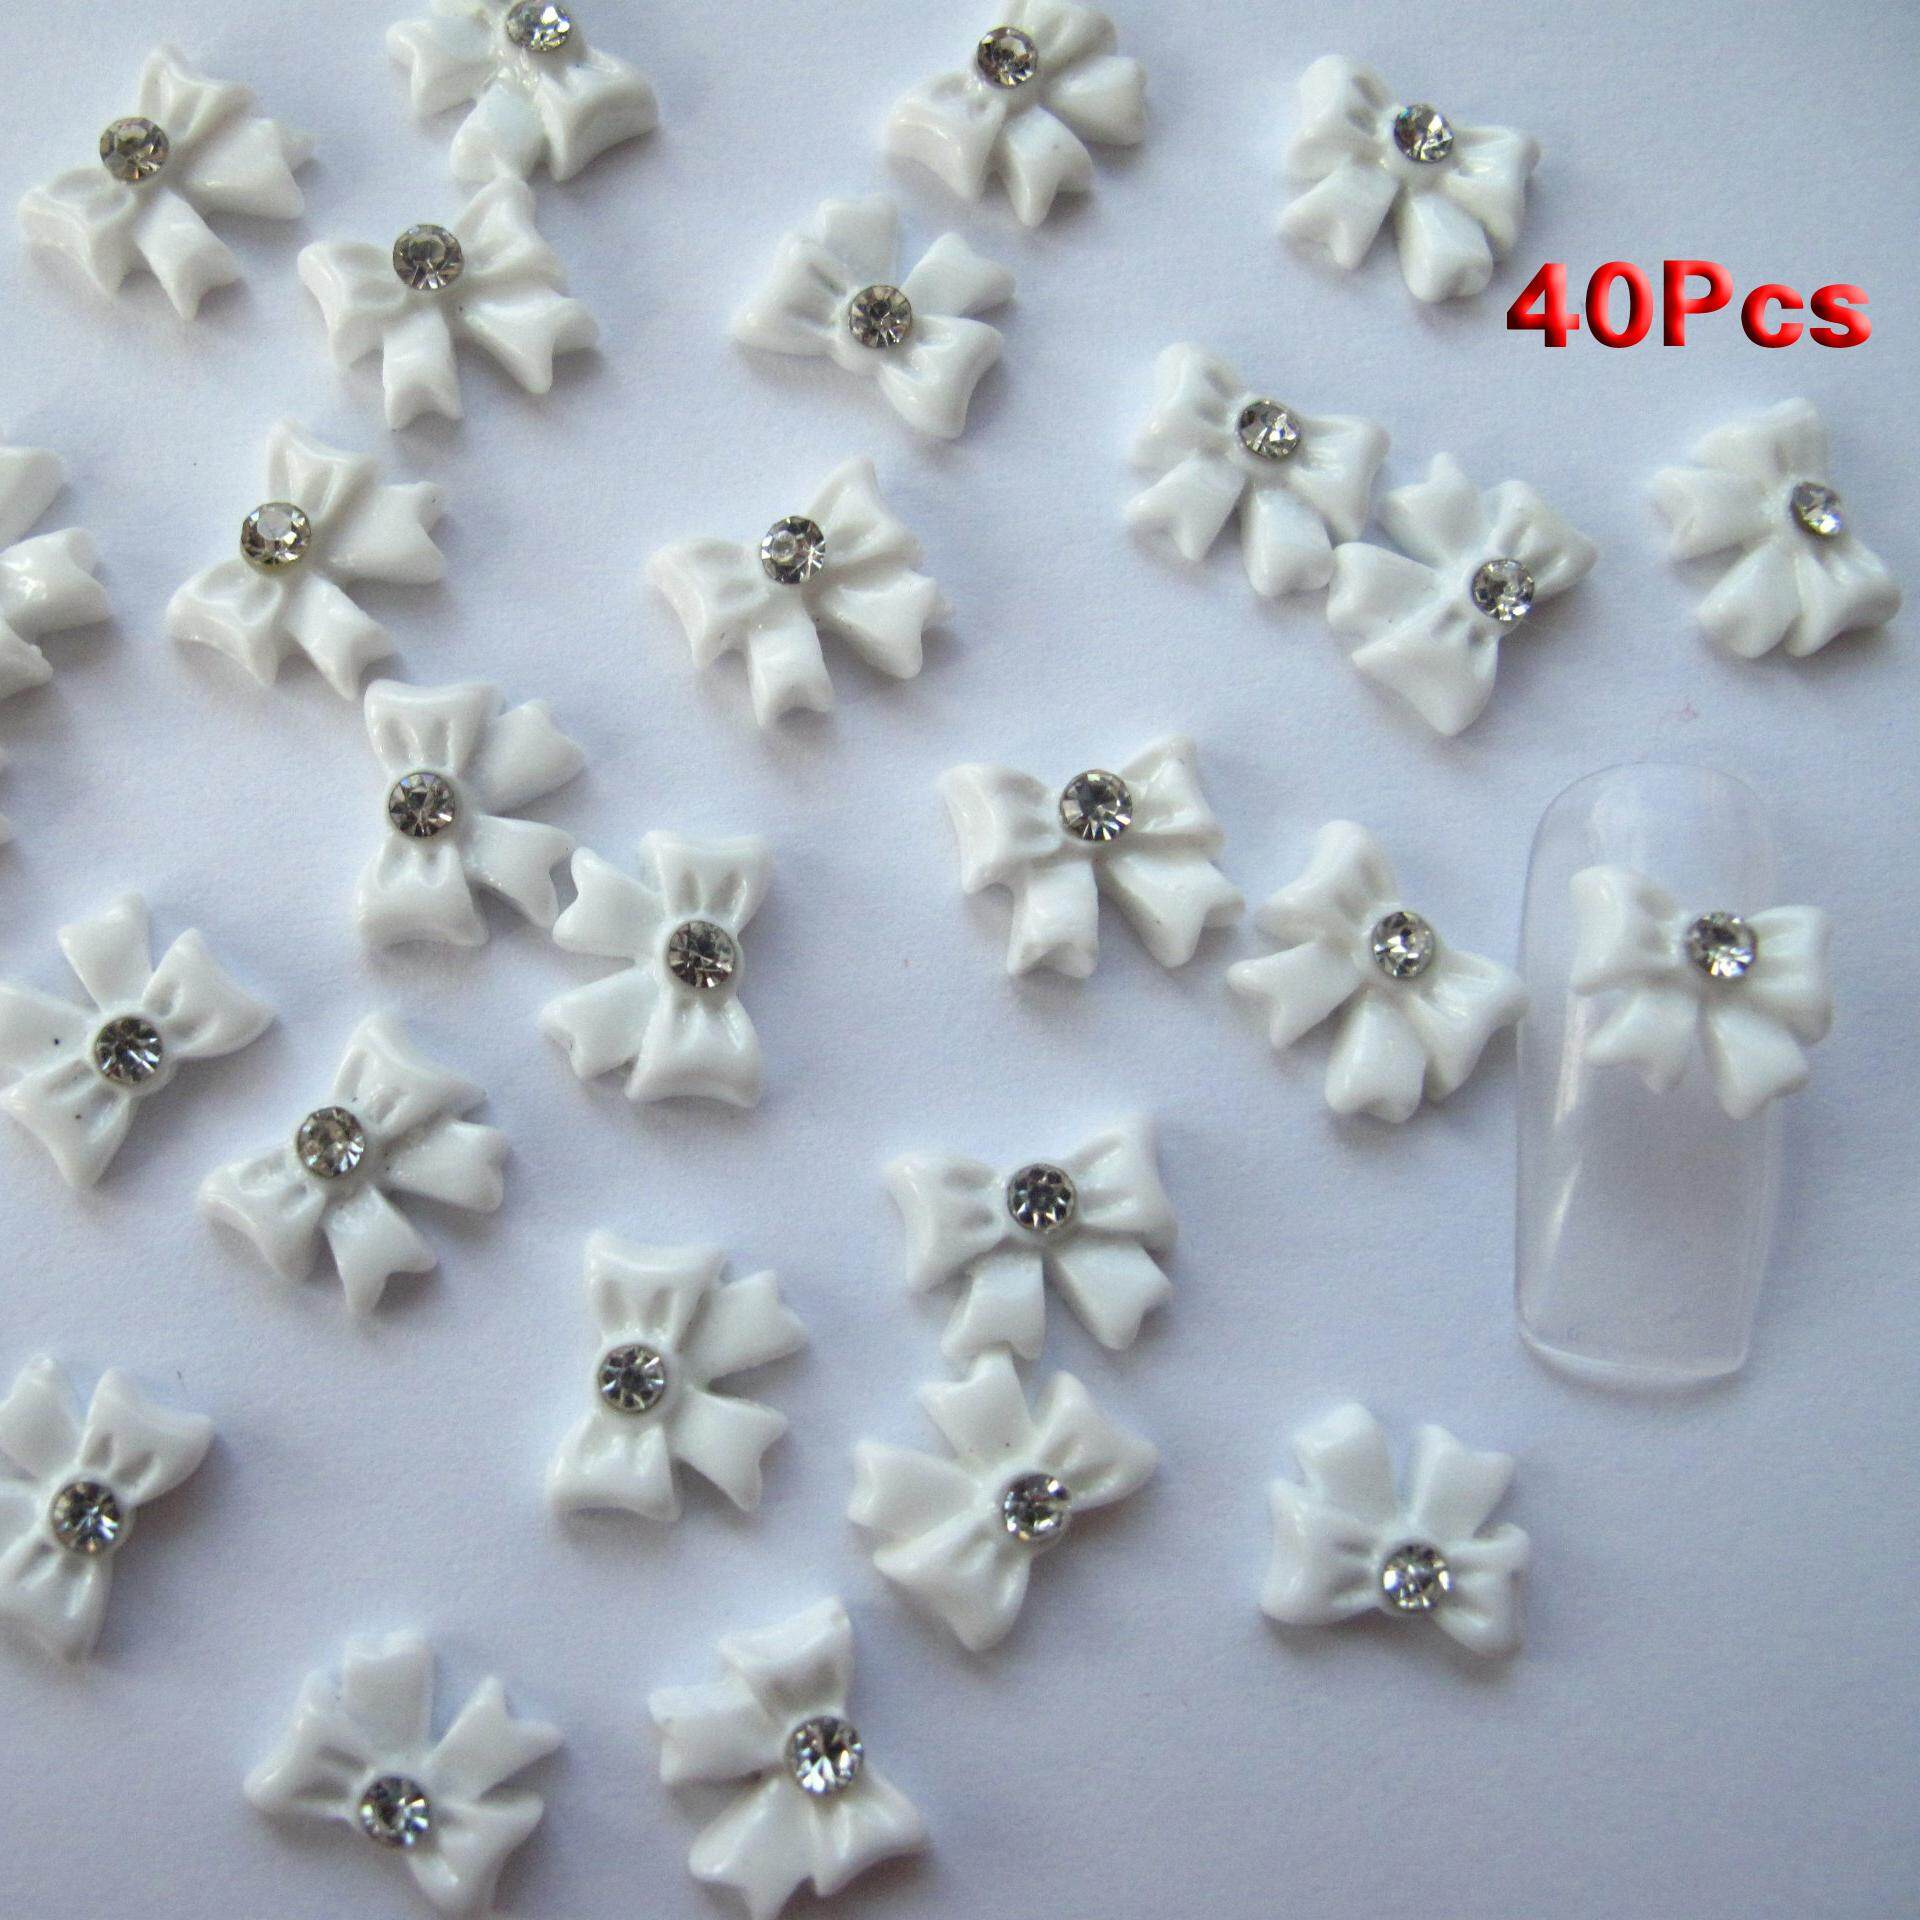 Nail Art 3d 40 Piece White BOW TIE /RHINESTONE for Nails, Cellphones 1.1cm - intl Philippines